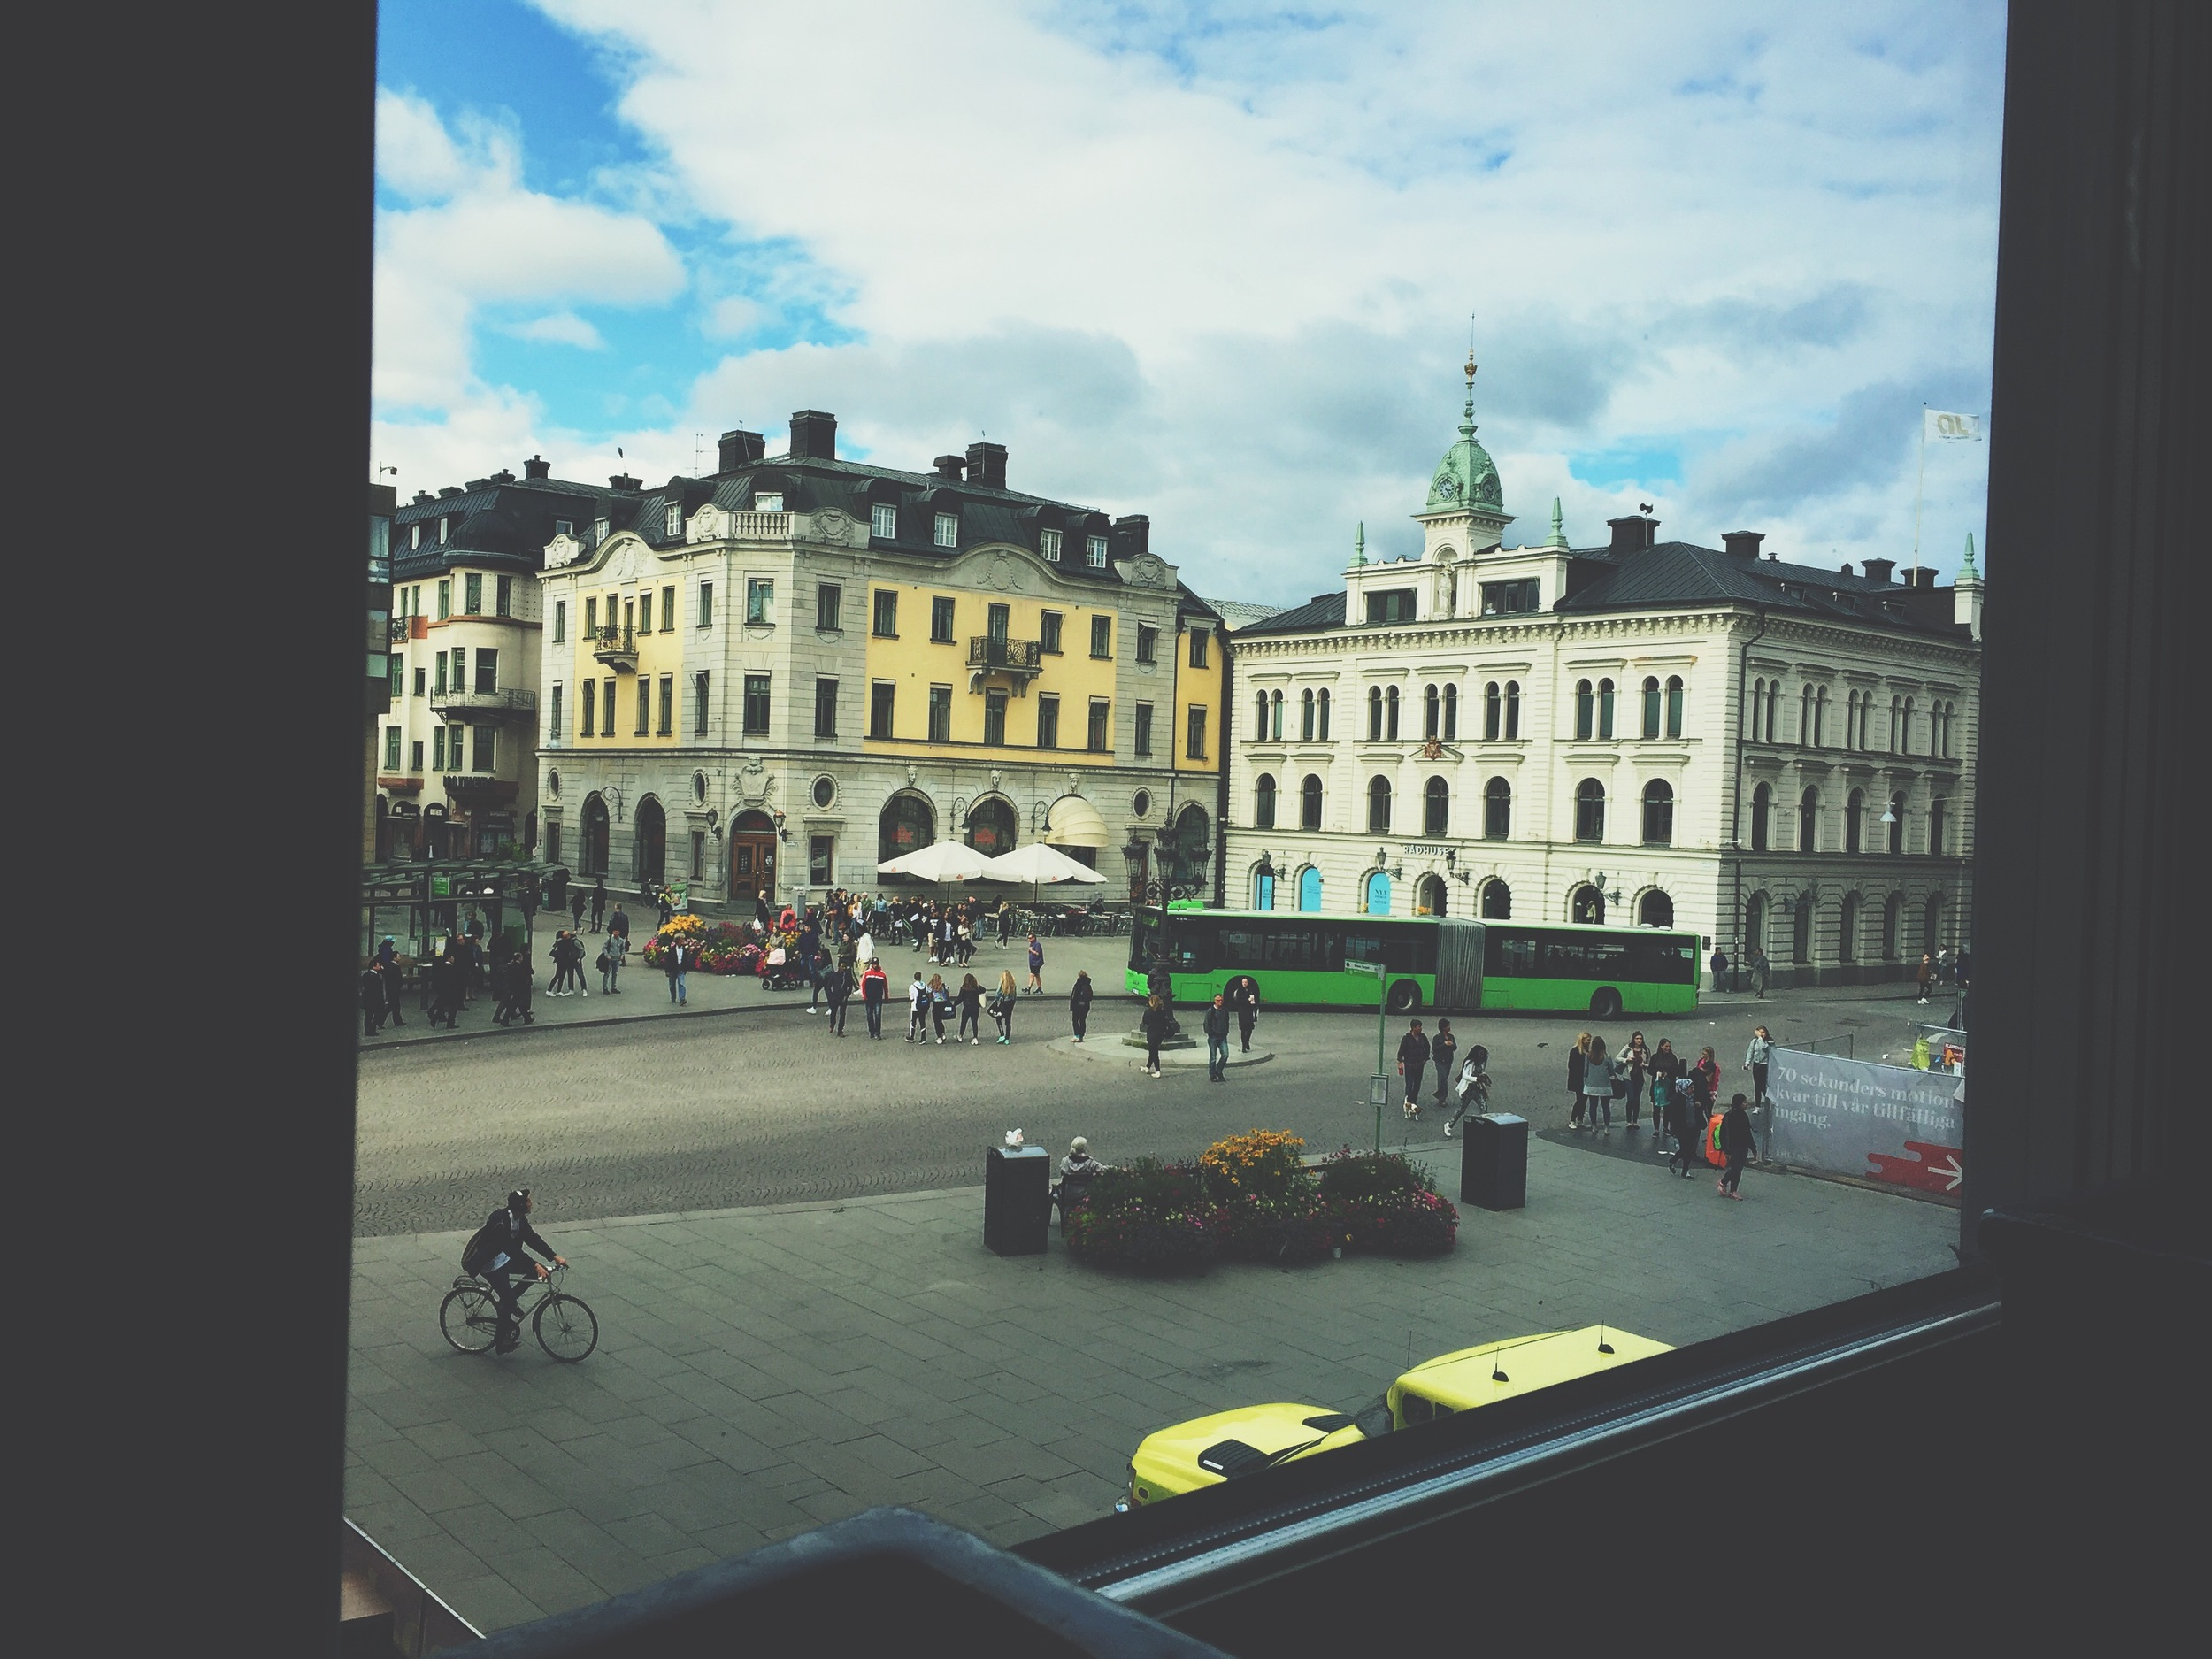 The view of the city center out of Cafe Storken.